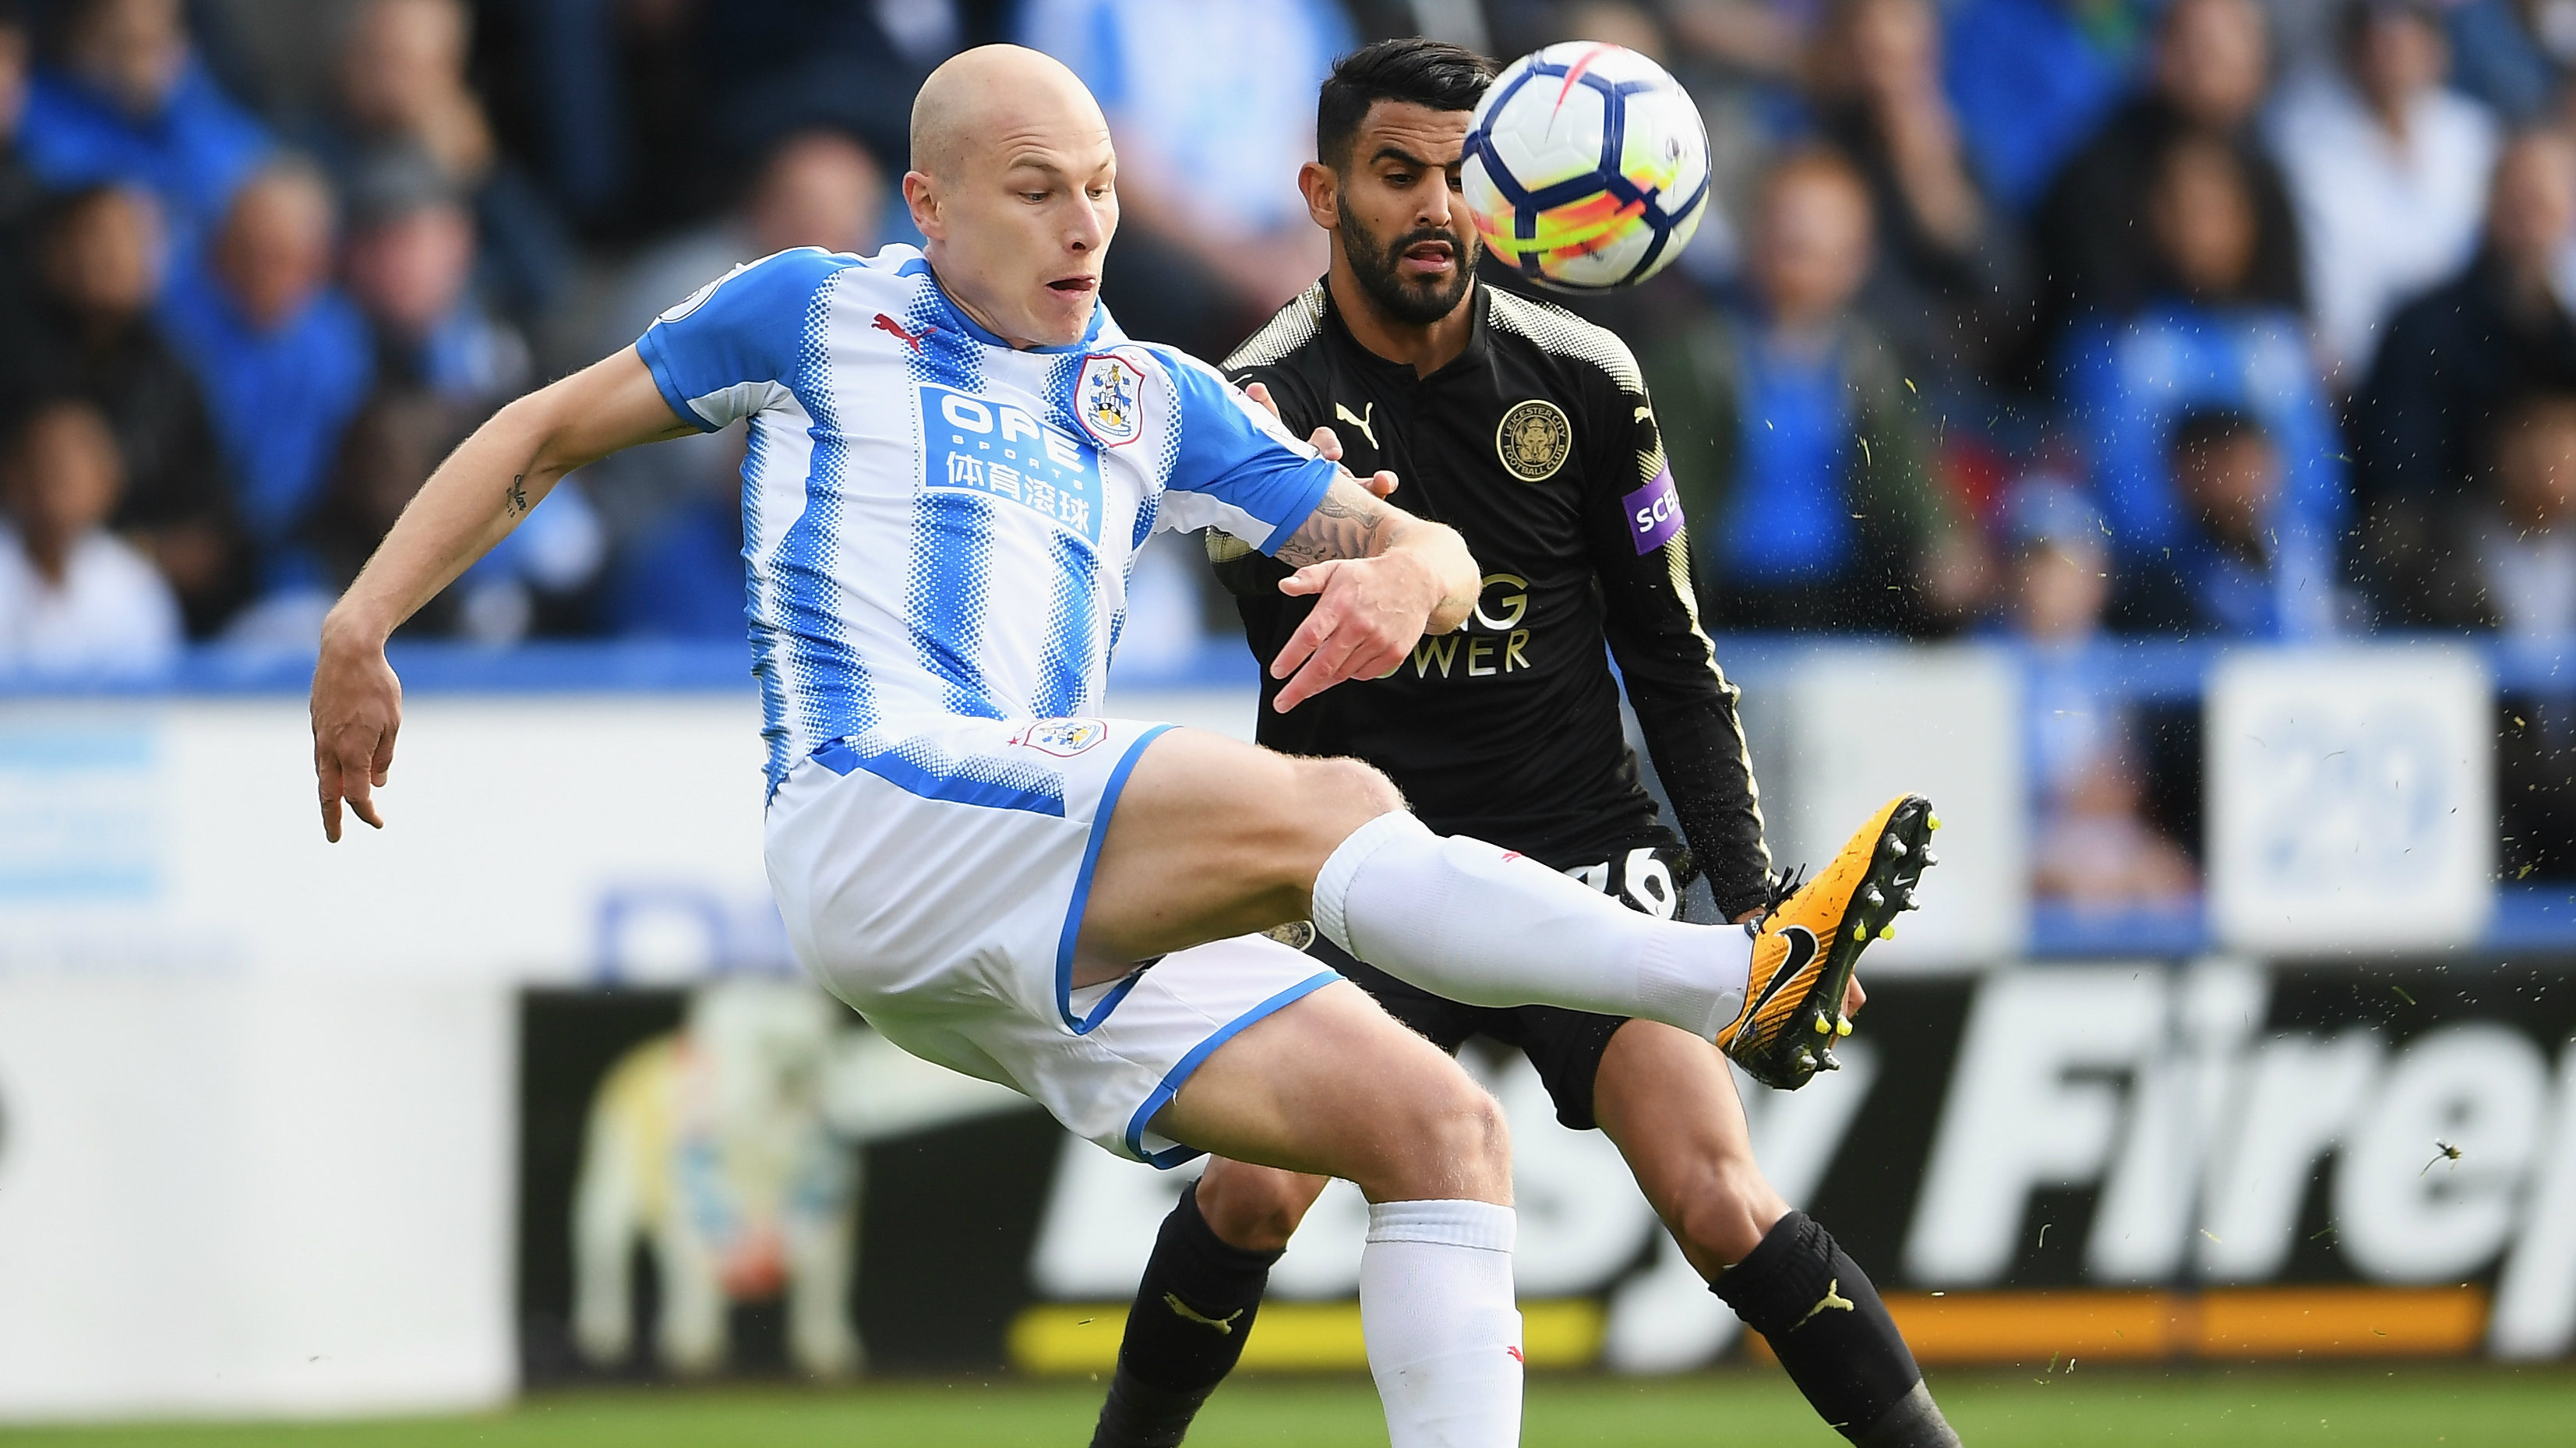 Aaron Mooy - pictured here under pressure from Riyadh Mahrez - was superb in Huddersfield's 1-1 draw with Leicester City.